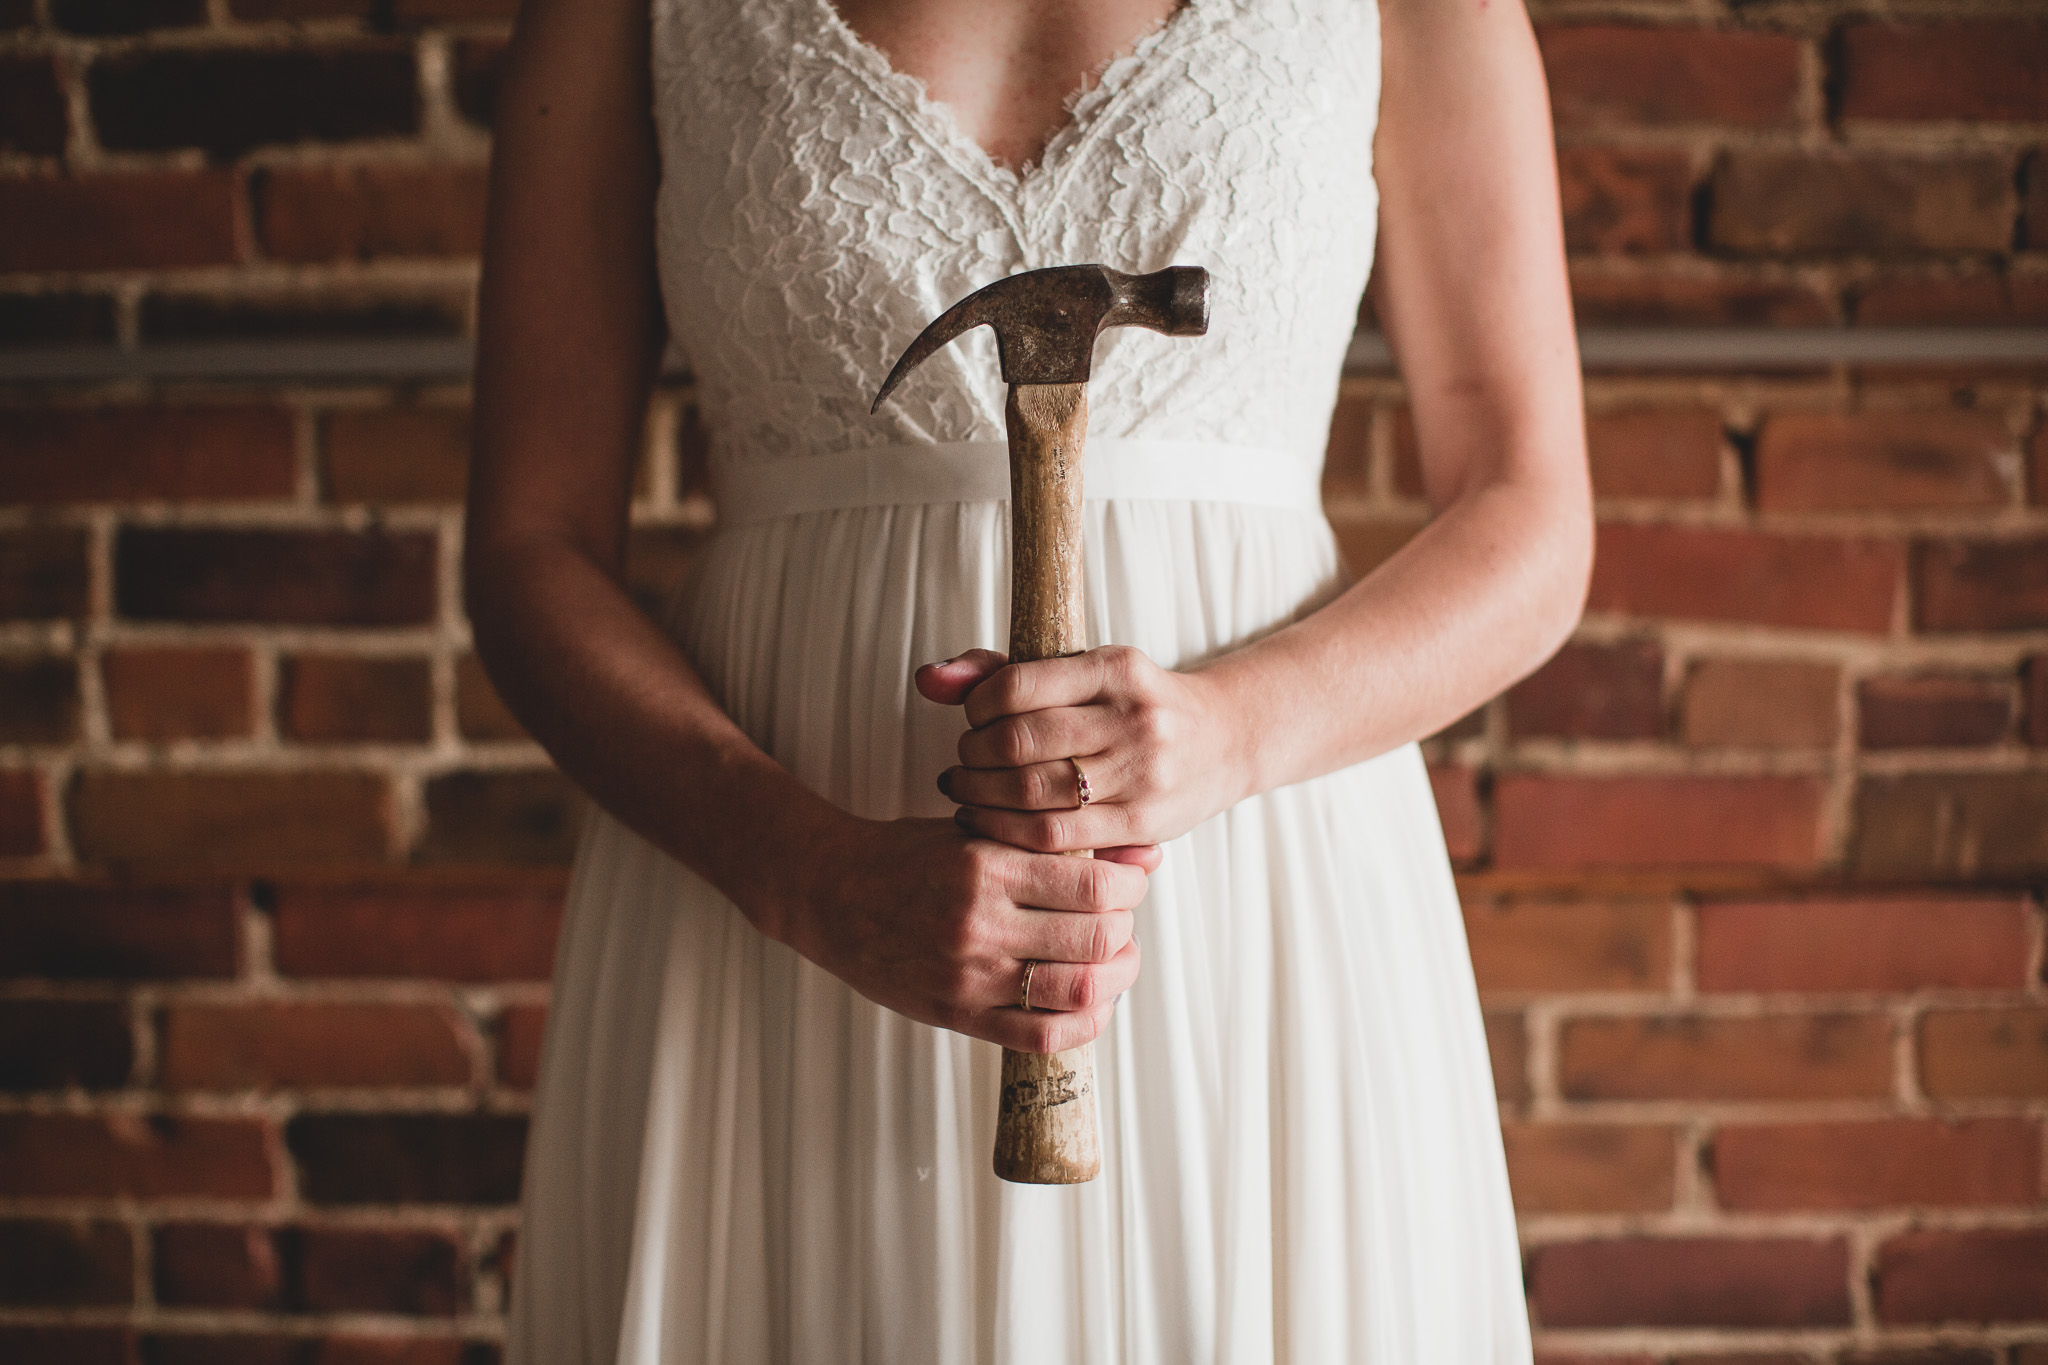 Woman in a Wedding Dress holding a hammer